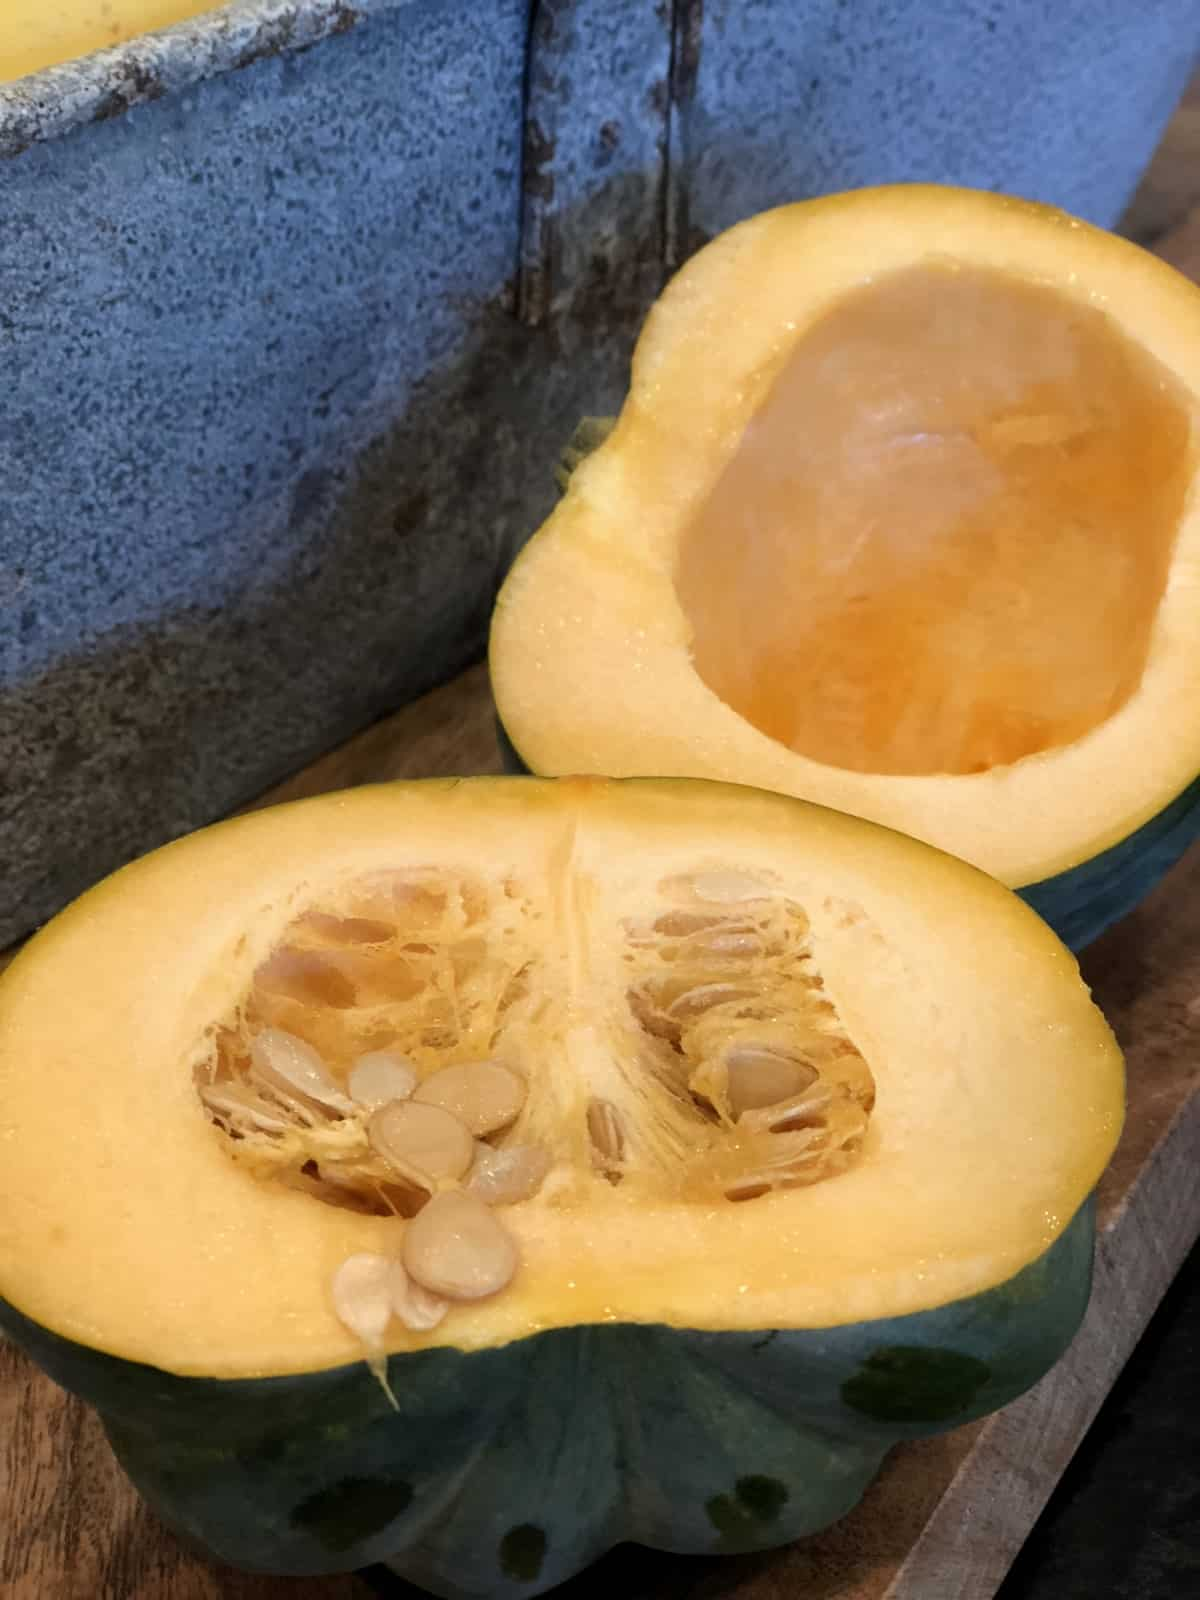 Acorn squash cut in half with seeds removed from one half.